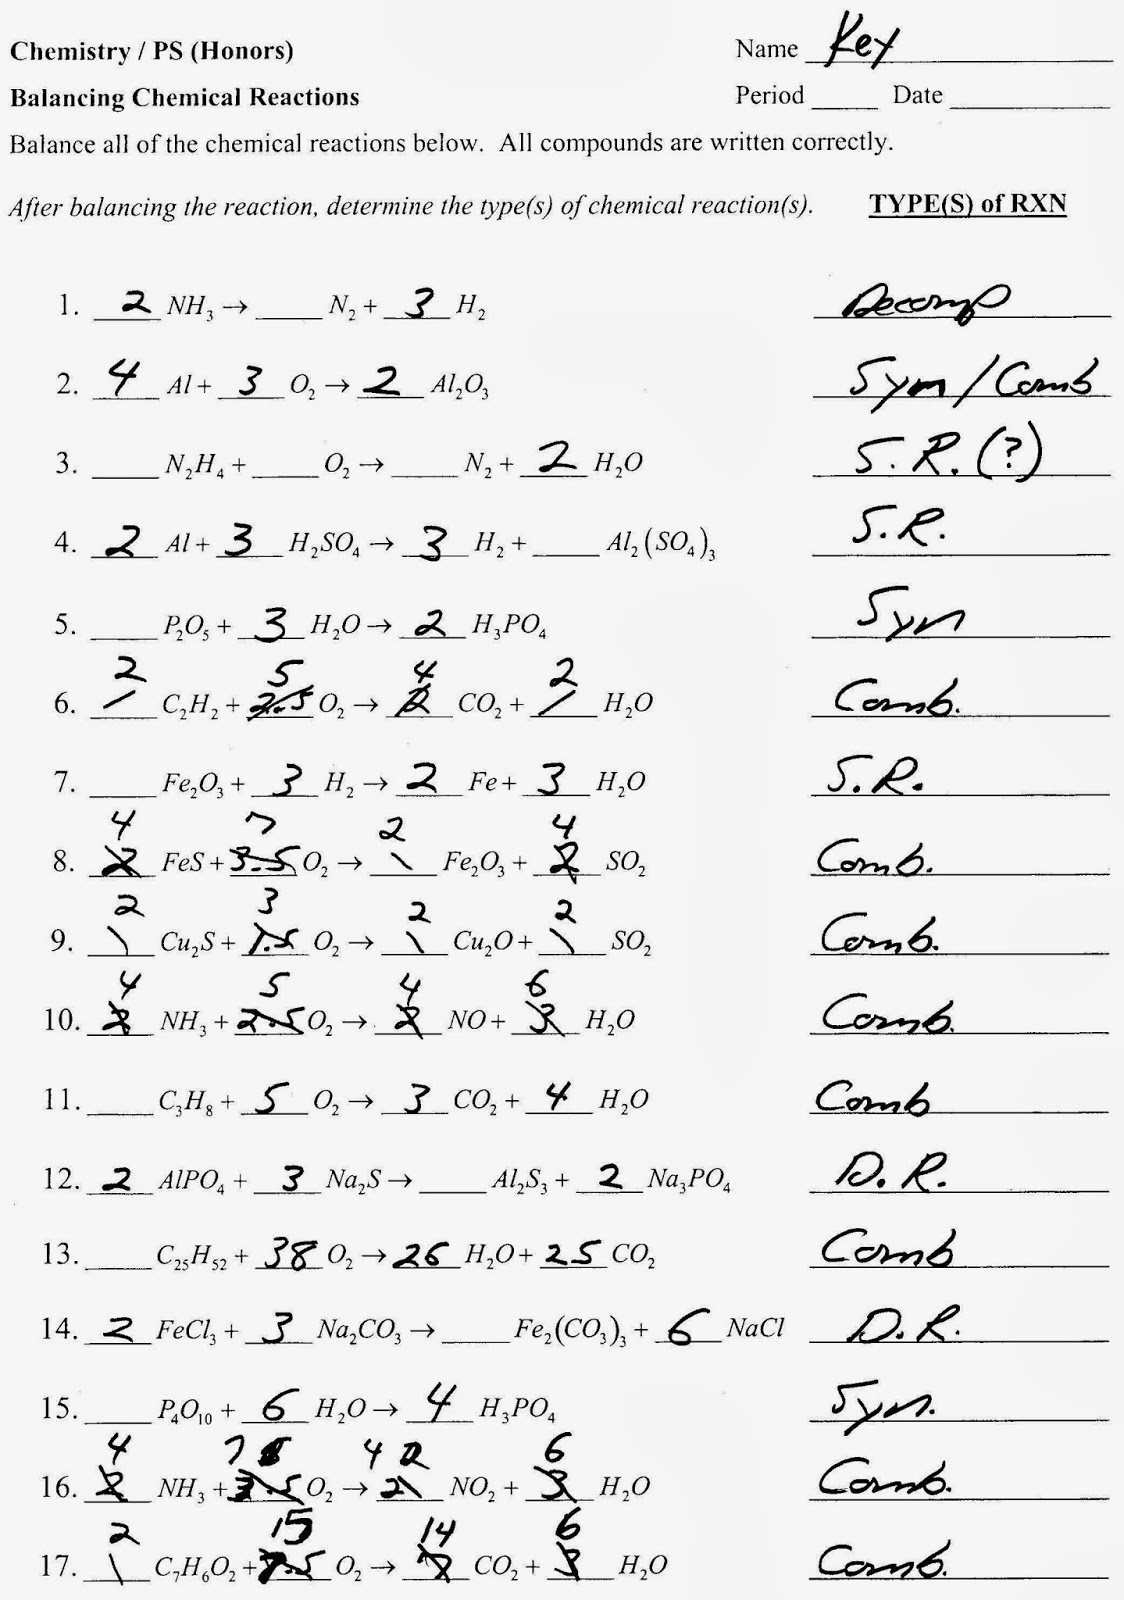 Aldiablosus  Nice Balancing Chemical Equations Worksheets Balancing Chemical  With Likable Balancing Chemical Equations Worksheet Answer Key On Chemistry Double With Easy On The Eye Compare And Contrast Free Worksheets Also My Culture Worksheet In Addition Mlk Jr Worksheets And Double Digit Addition With Regrouping Worksheets Nd Grade As Well As Language Arts St Grade Worksheets Additionally Arabic Alphabet For Kids Worksheets From Letstalkhiphopus With Aldiablosus  Likable Balancing Chemical Equations Worksheets Balancing Chemical  With Easy On The Eye Balancing Chemical Equations Worksheet Answer Key On Chemistry Double And Nice Compare And Contrast Free Worksheets Also My Culture Worksheet In Addition Mlk Jr Worksheets From Letstalkhiphopus